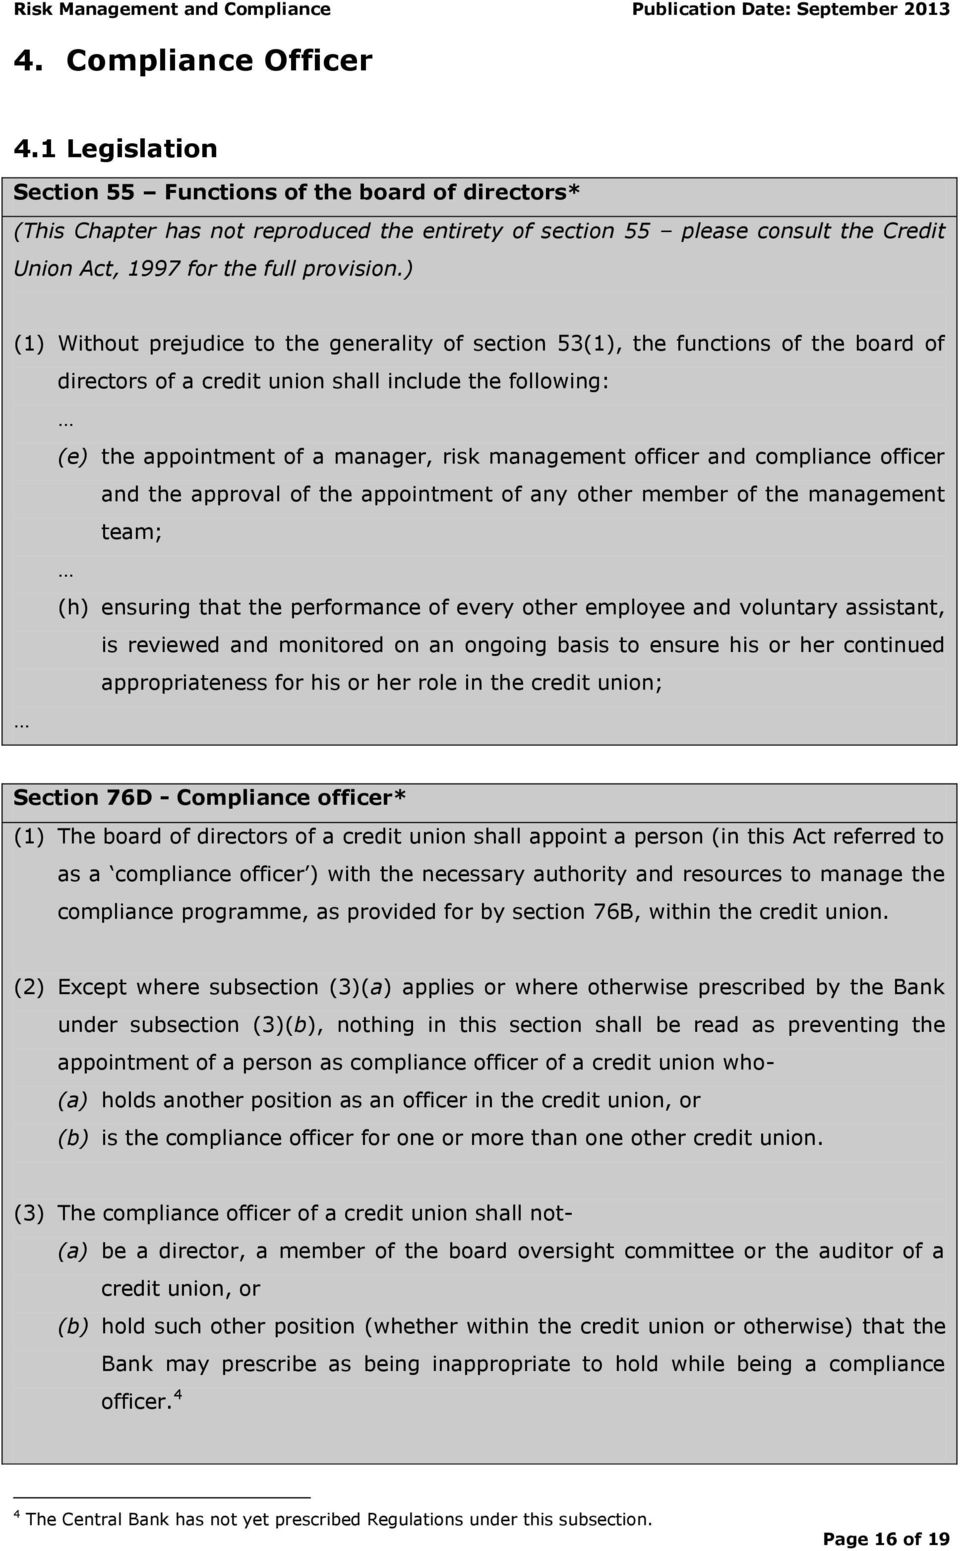 ) (1) Without prejudice to the generality of section 53(1), the functions of the board of directors of a credit union shall include the following: (e) the appointment of a manager, risk management